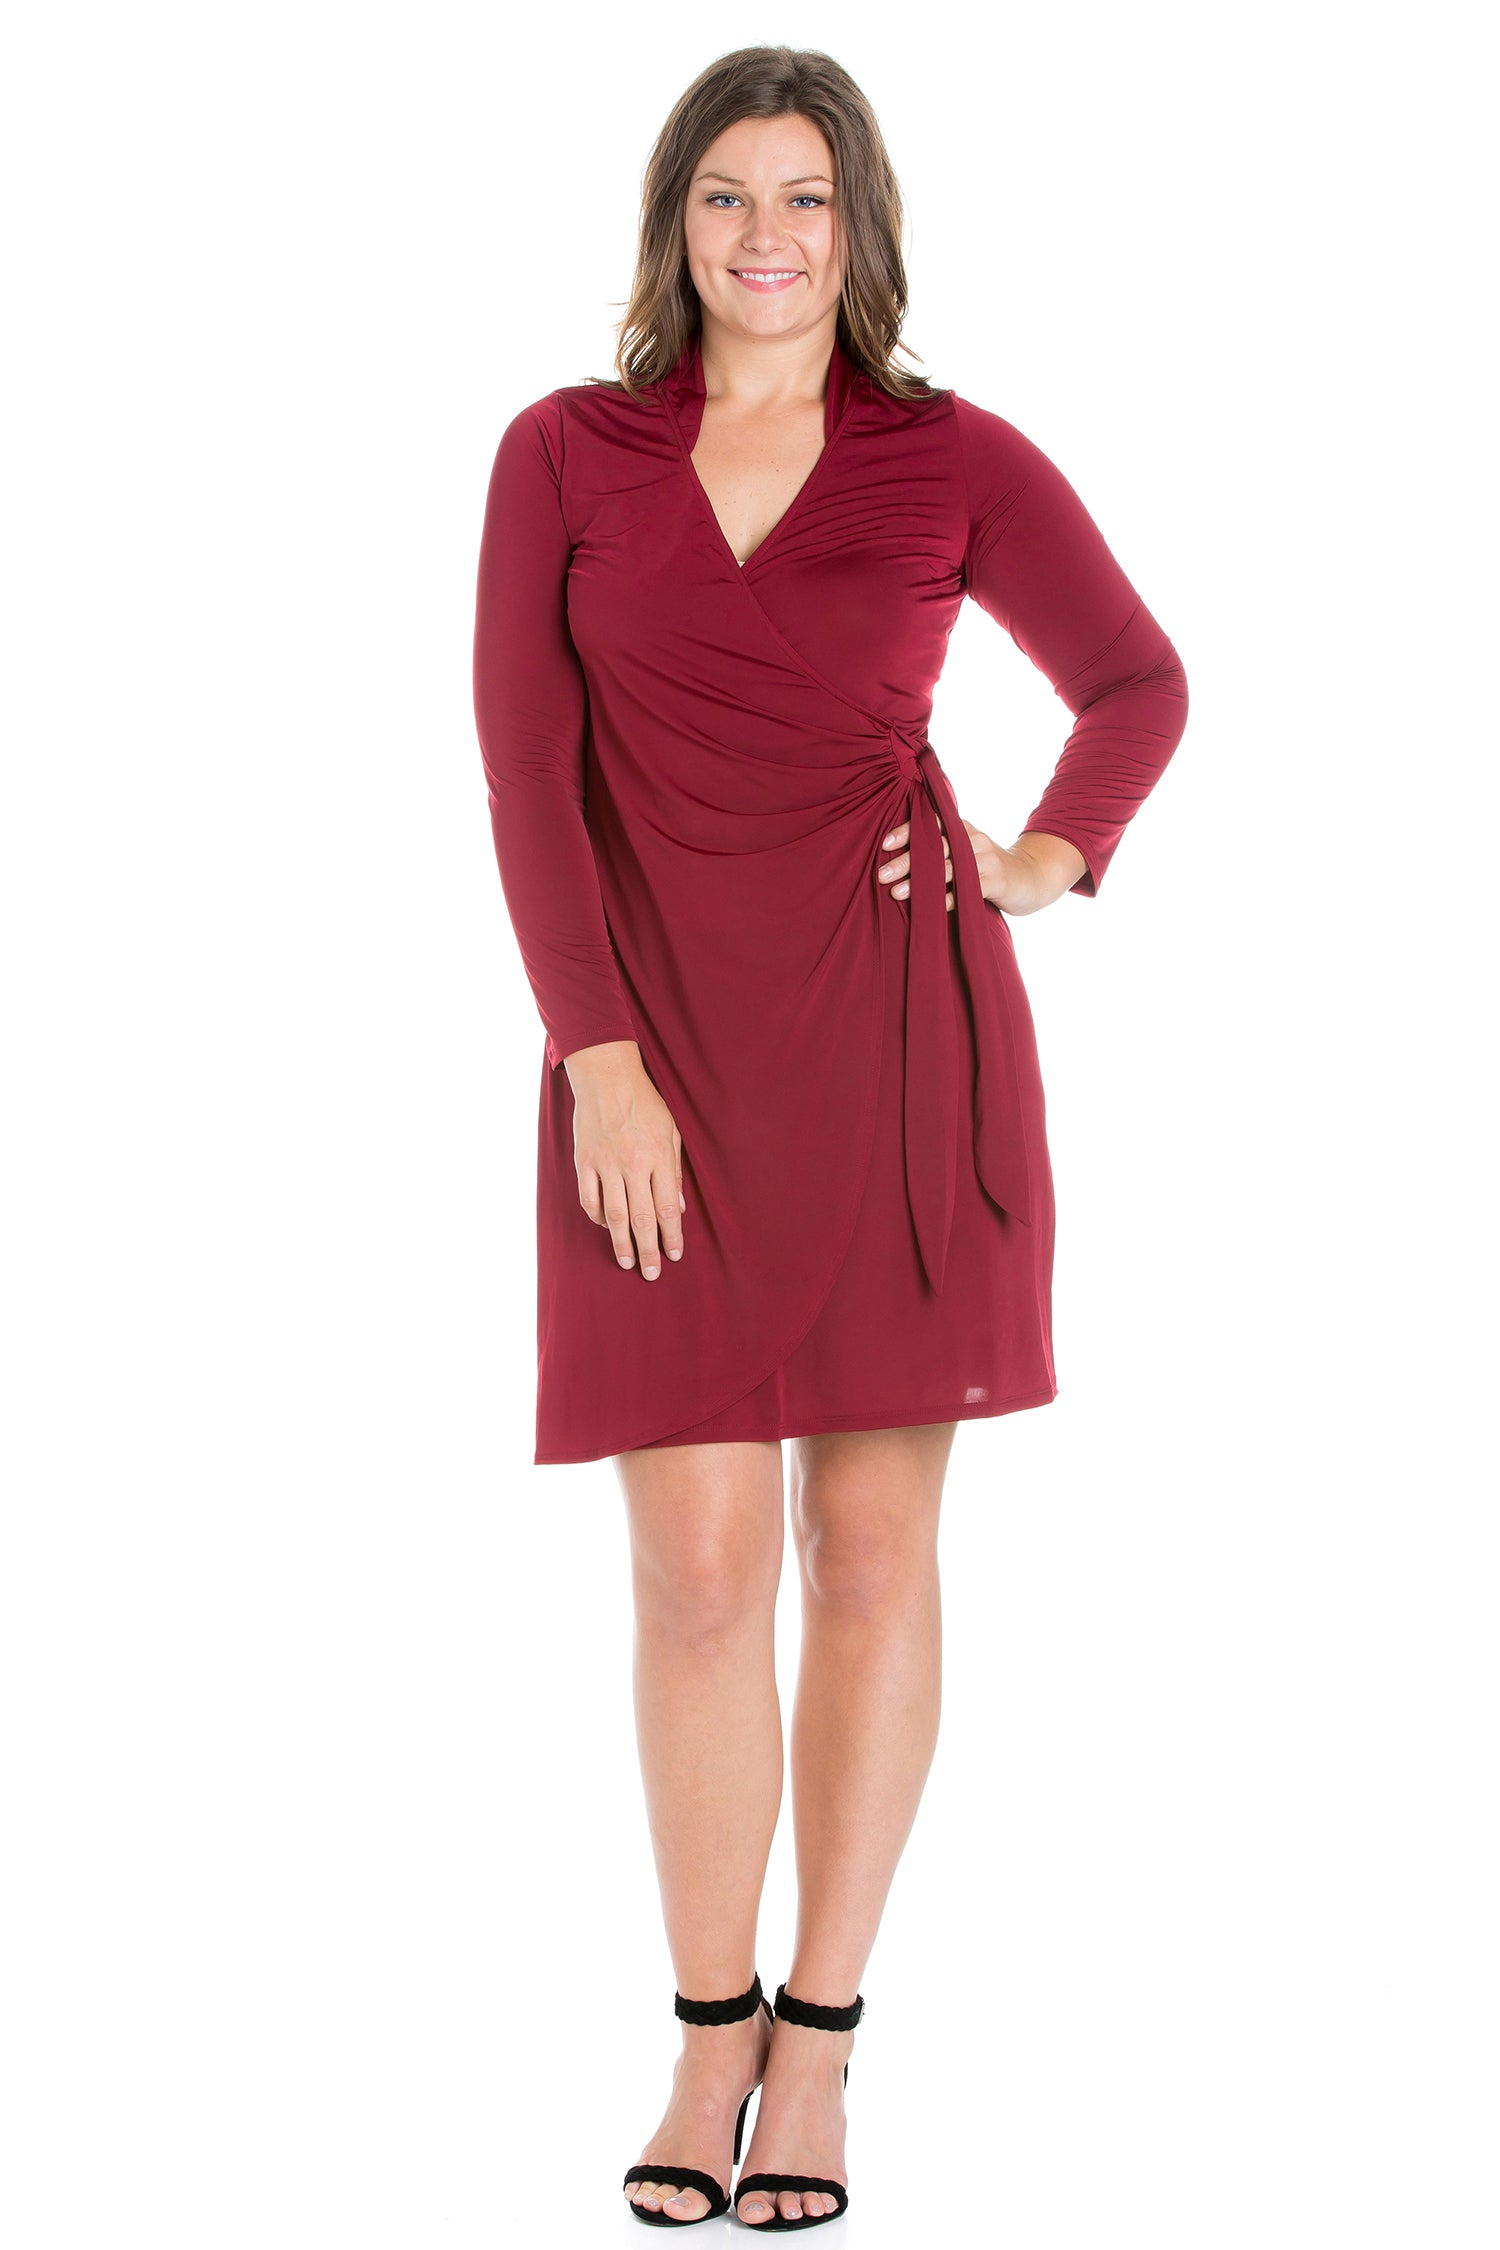 24seven Comfort Apparel Plus Size Long Sleeve V Neck Mini Wrap Dress-DRESSES-24Seven Comfort Apparel-BURGUNDY-1X-24/7 Comfort Apparel